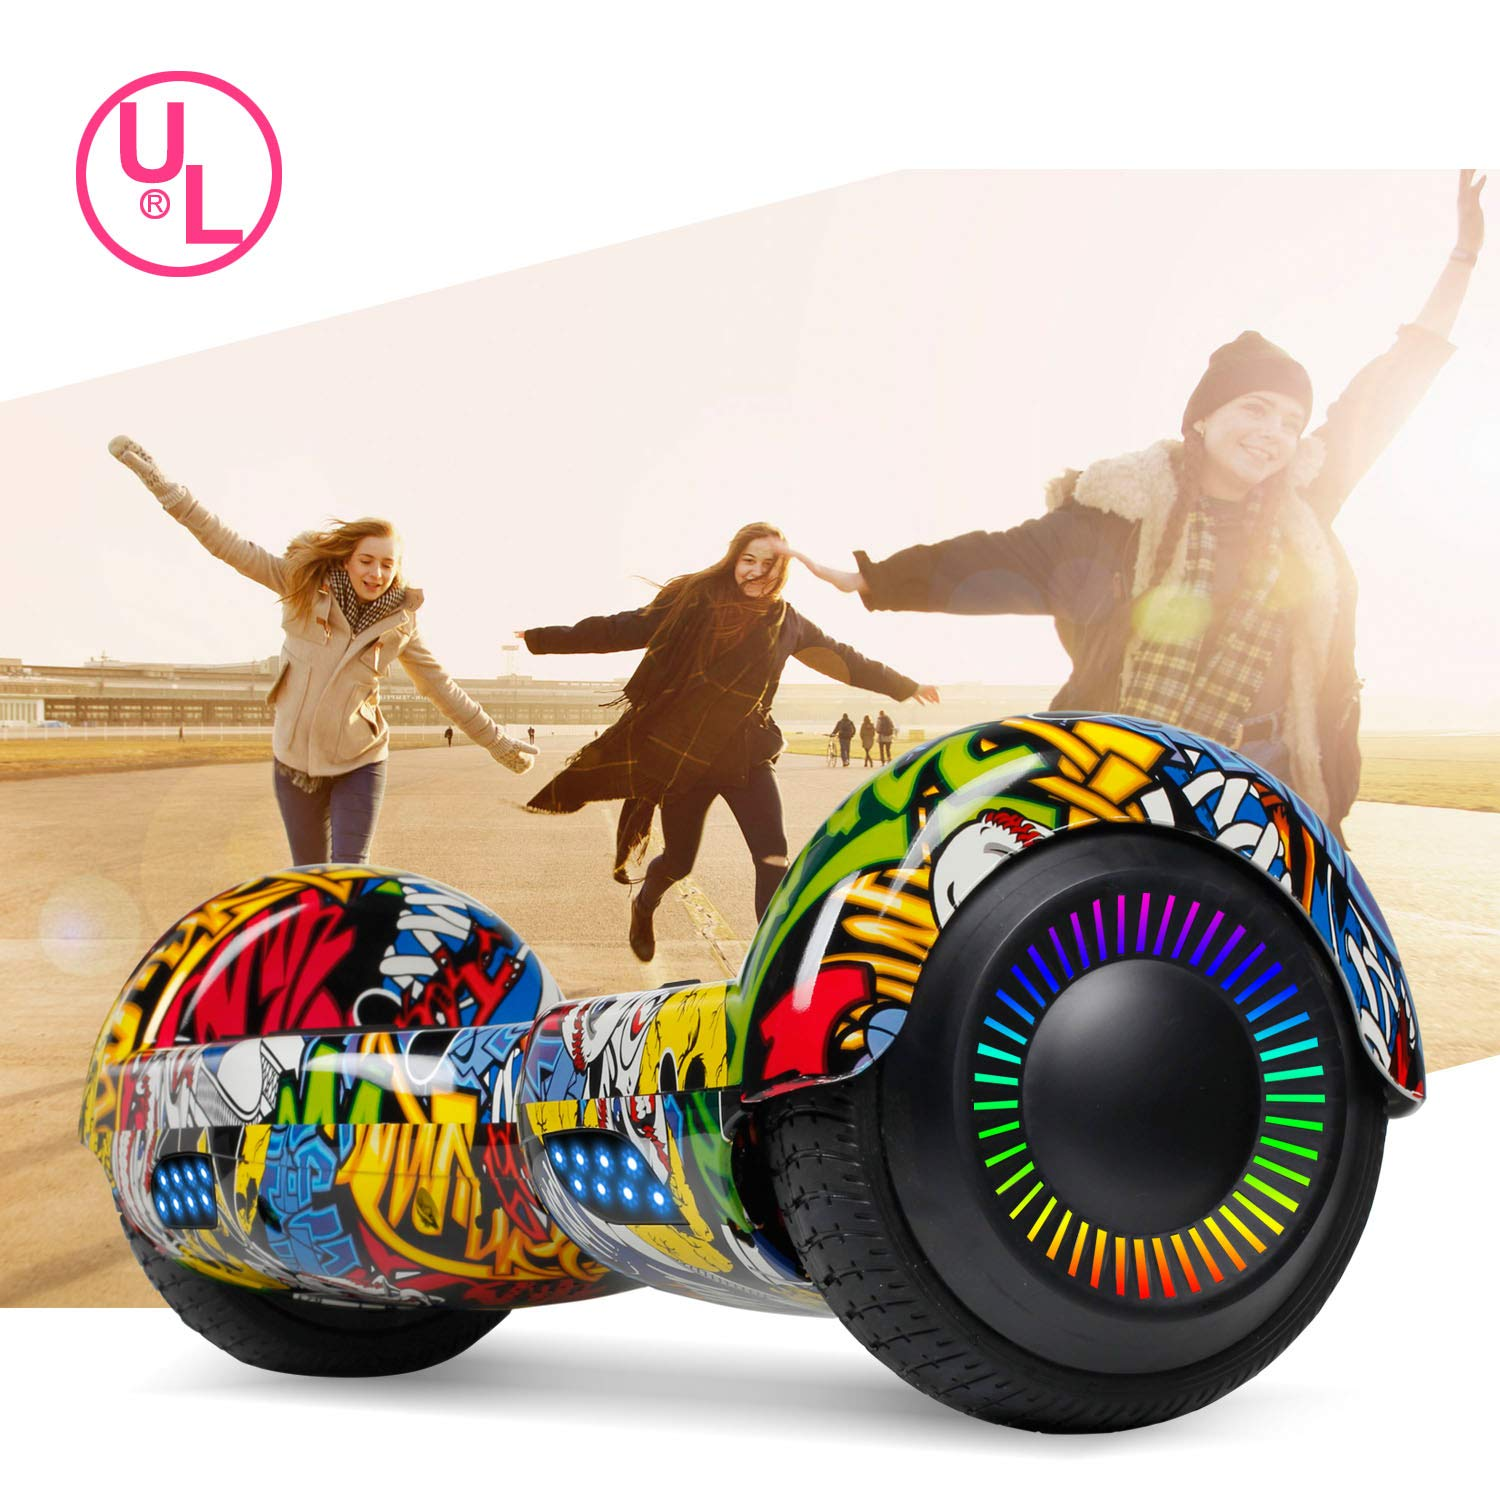 SISIGAD Hoverboard Self Balancing Scooter 6.5'' Two-Wheel Self Balancing Hoverboard with LED Lights Electric Scooter for Adult Kids Gift UL 2272 Certified Fun Edition - Graffiti by SISIGAD (Image #7)